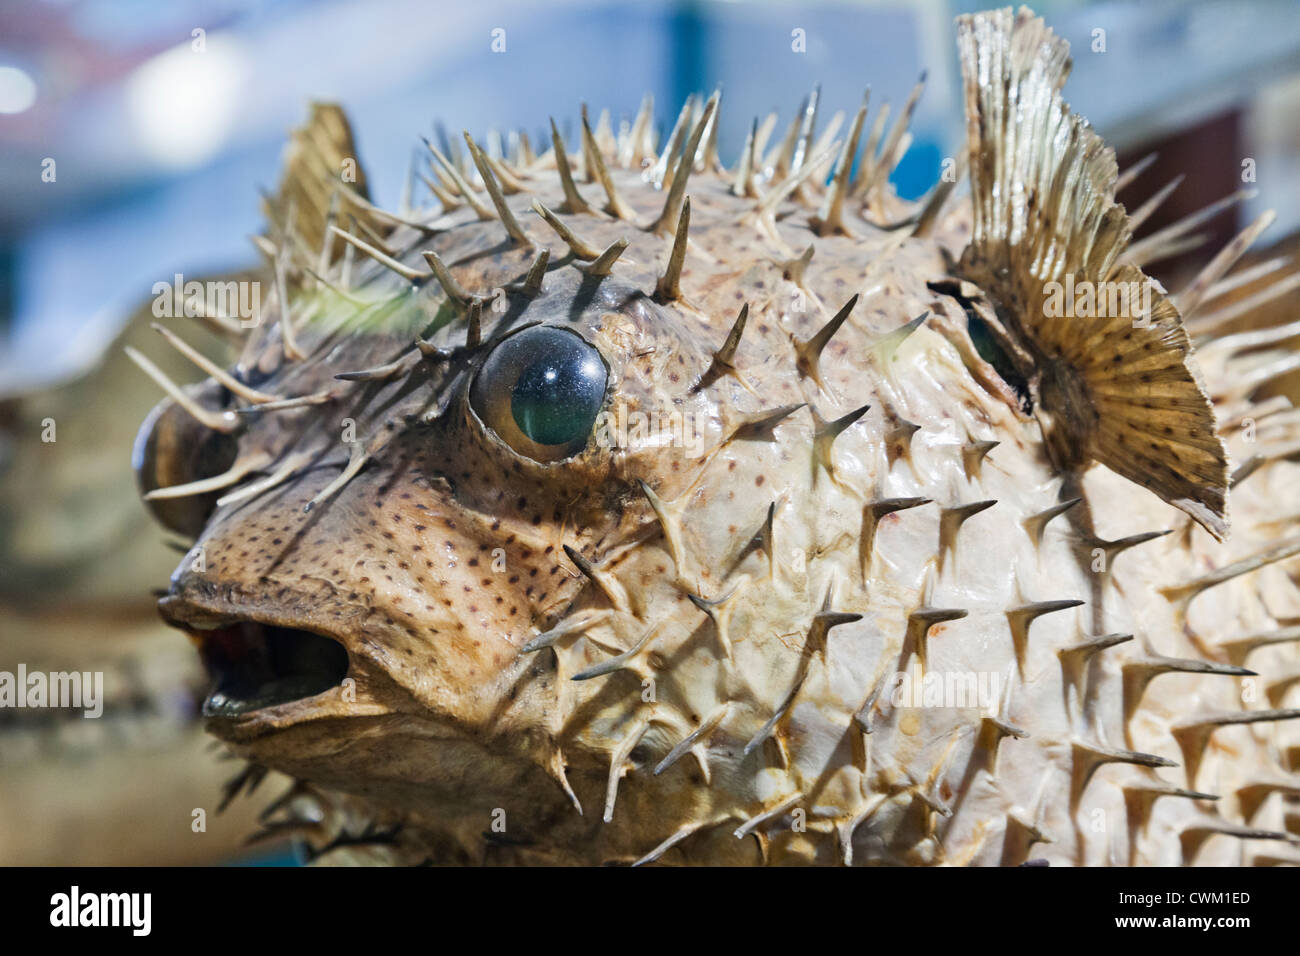 England, London, University College London, The Grant Museum of Zoology, Puffer Fish - Stock Image